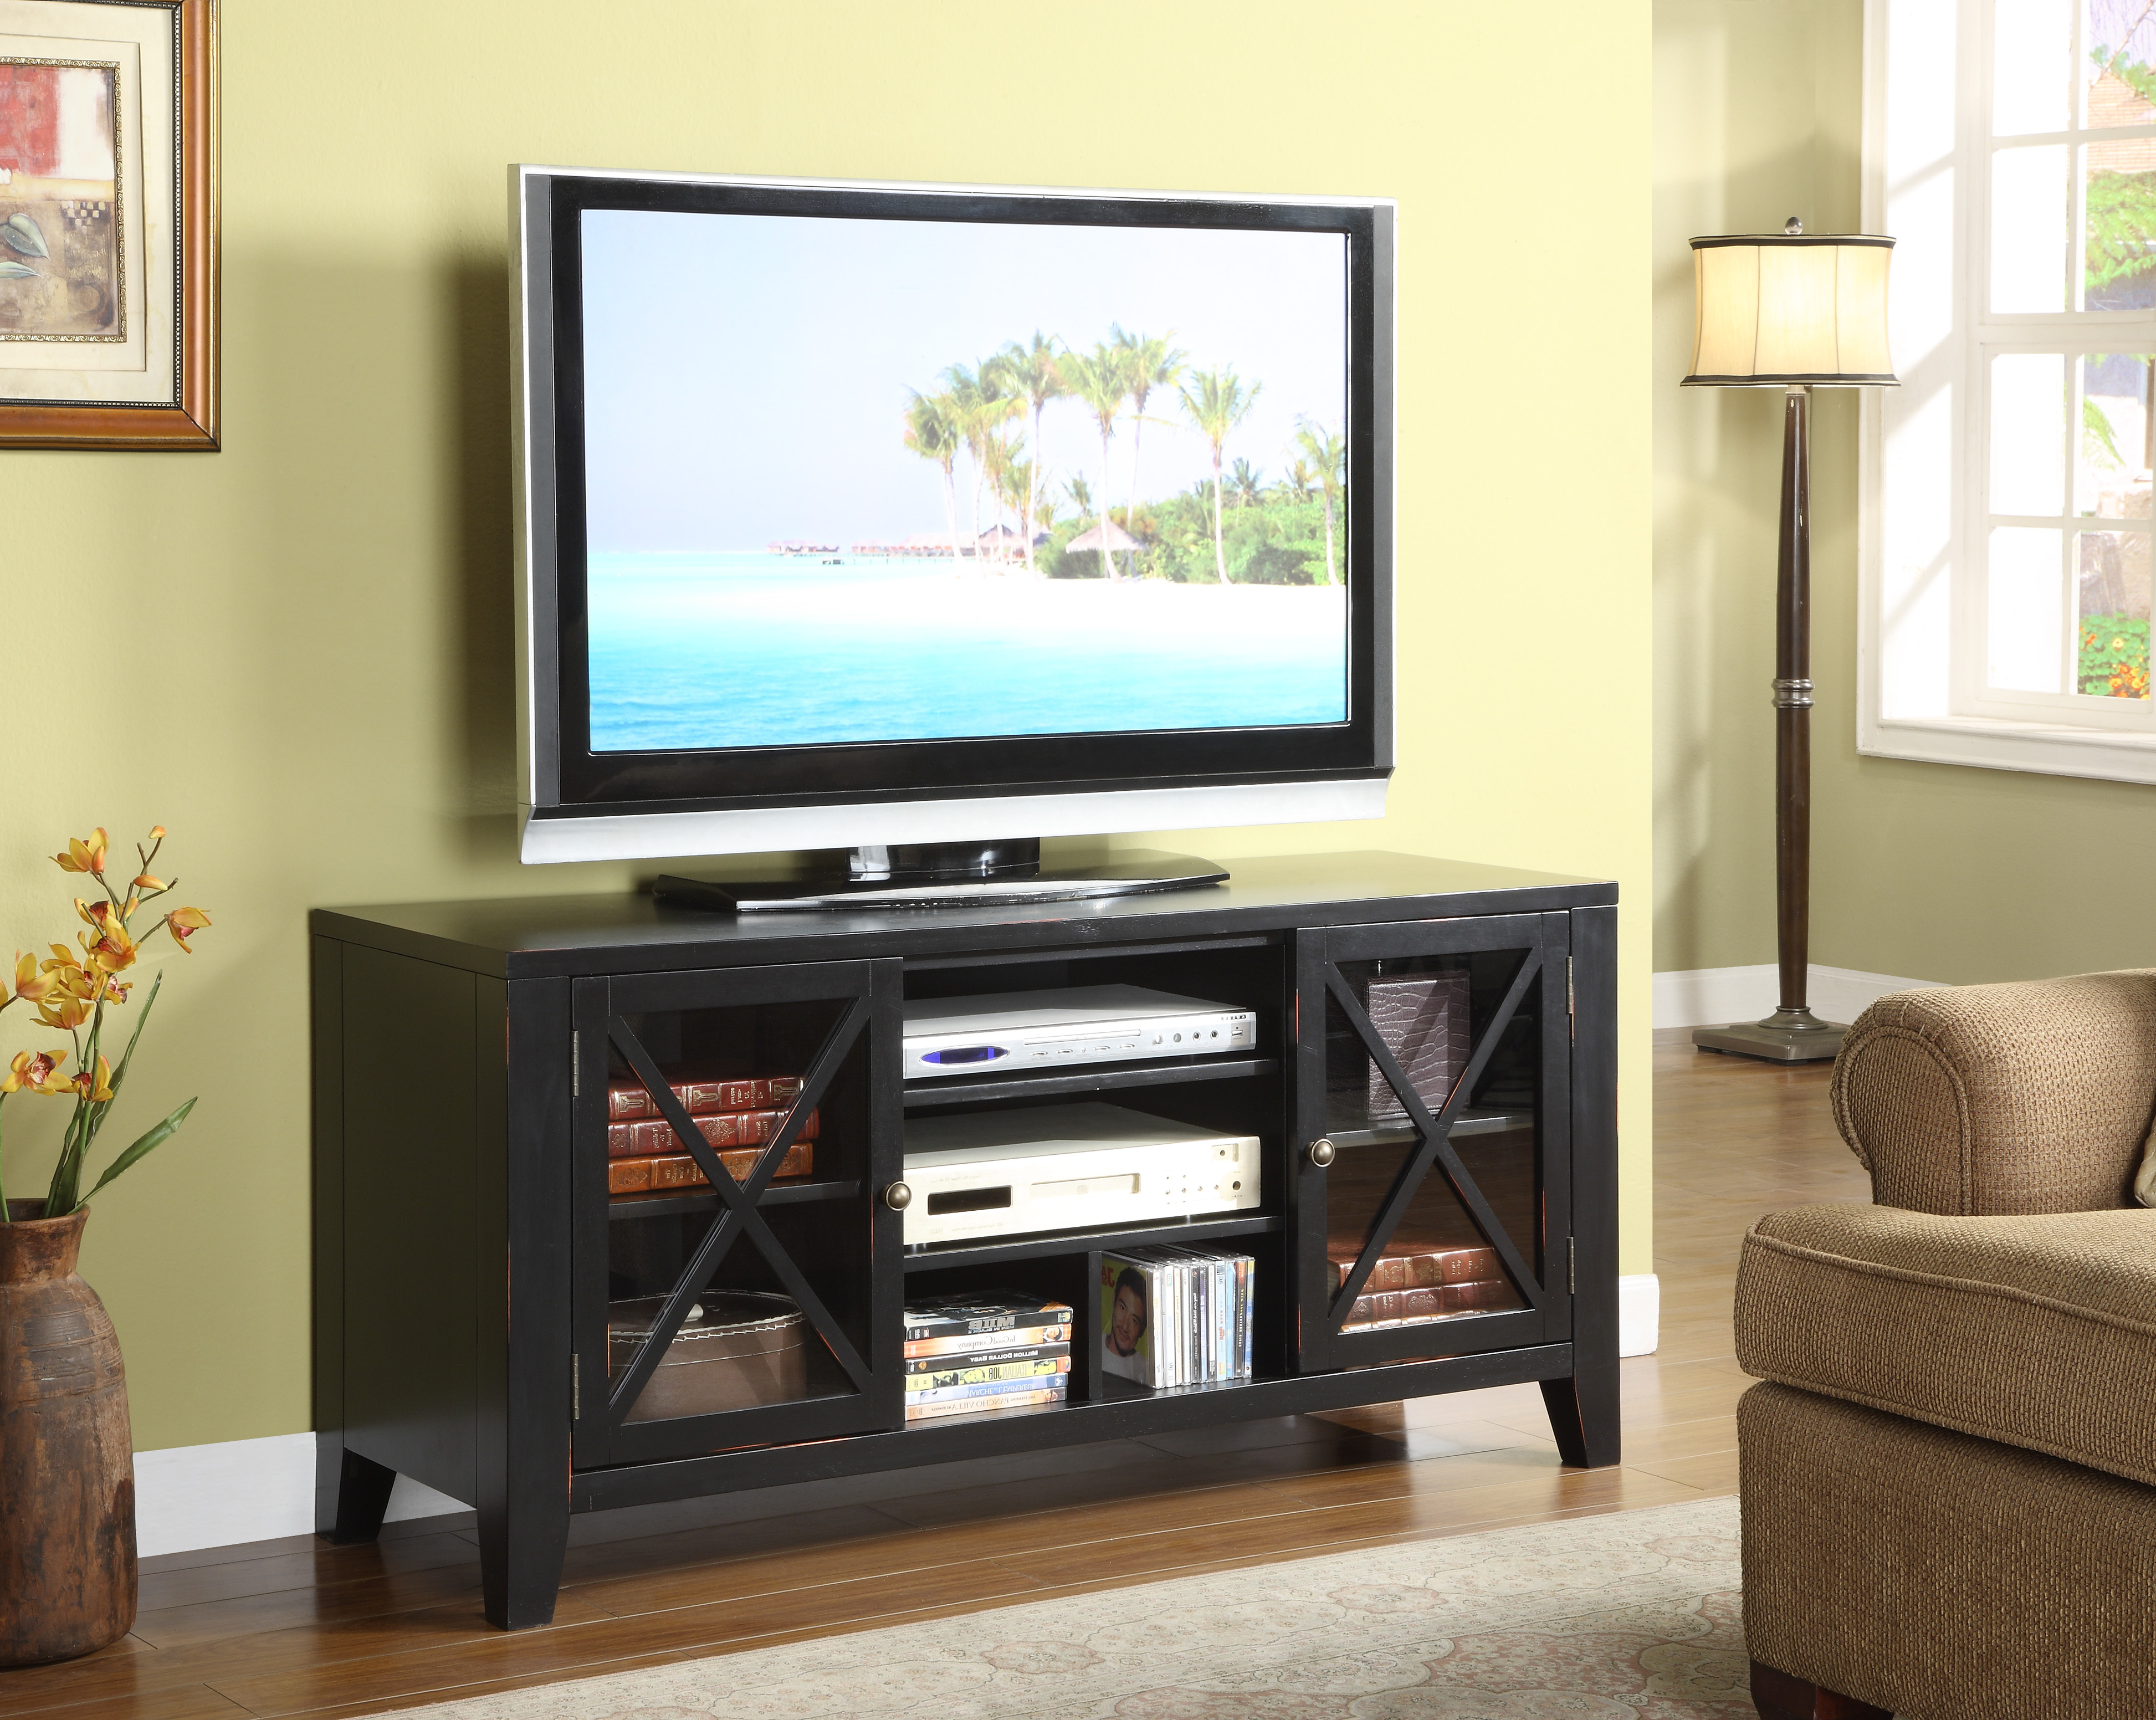 Famous Black Painted X Front Distressed Tv Stand – Walmart In Painted Tv Stands (View 9 of 20)